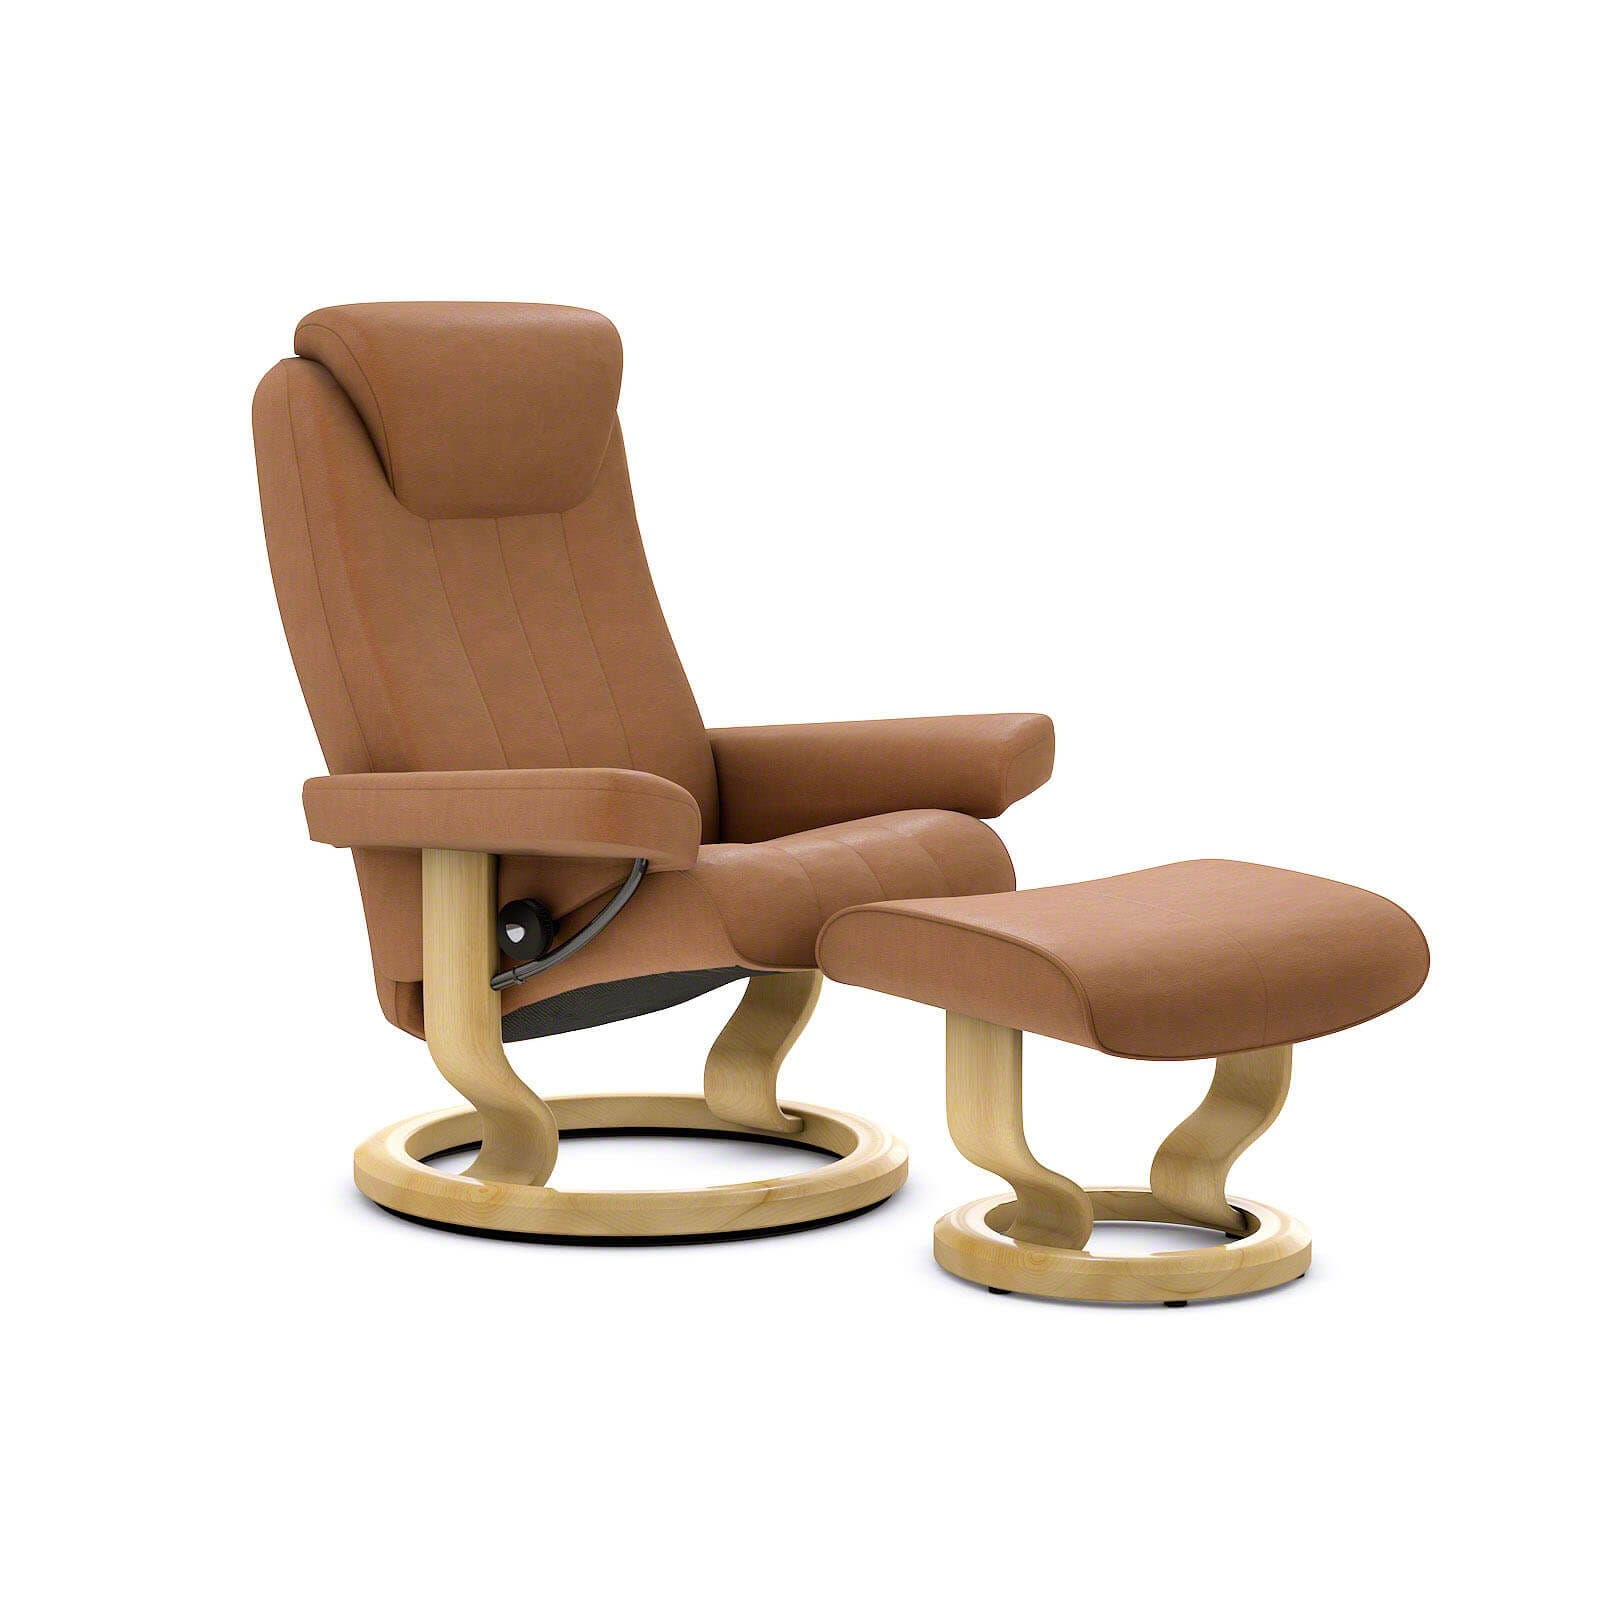 sessel taupe, stressless bliss sessel taupe mit hocker | stressless shop, Design ideen